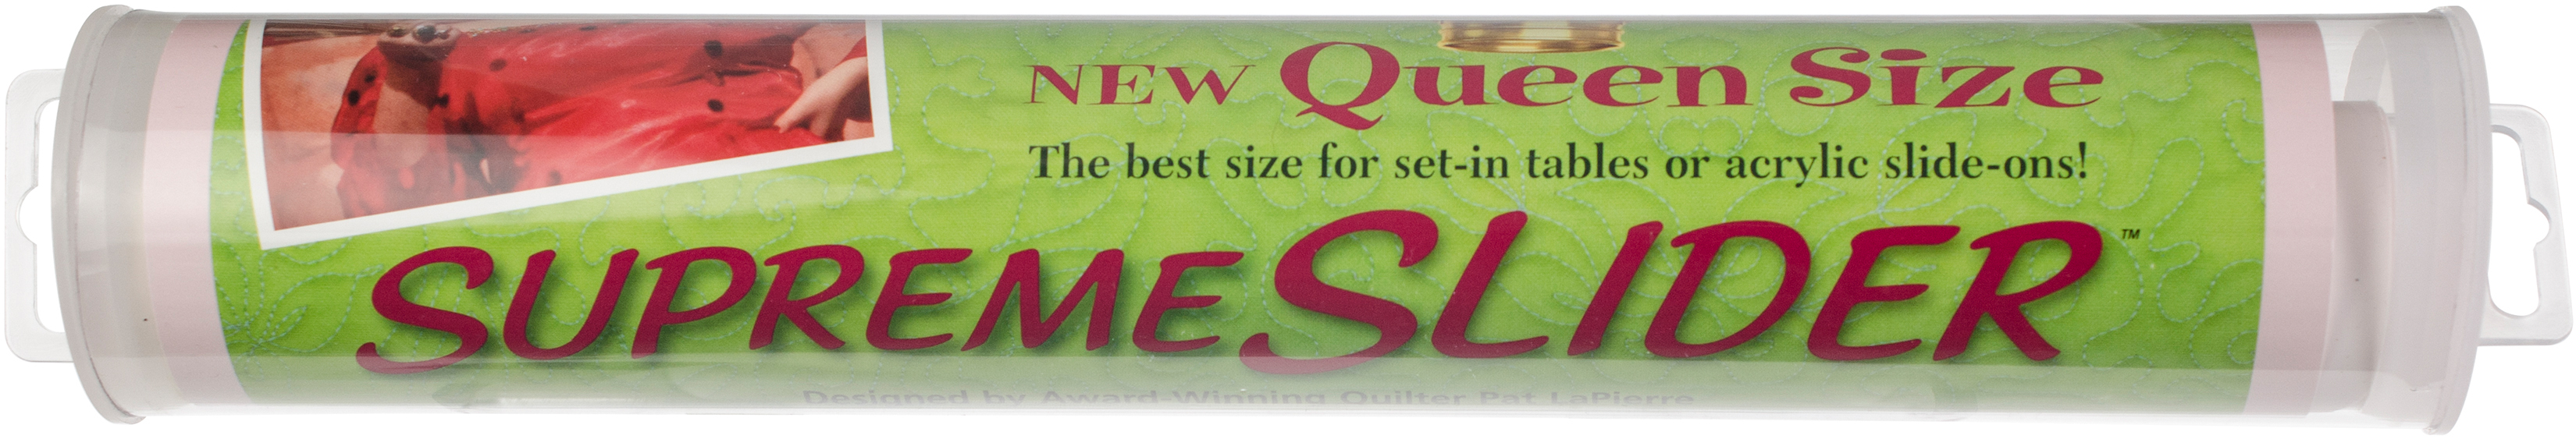 Free Motion QUEEN SIZE SUPREME SLIDER for Sewing Quilting Machines by LaPierre